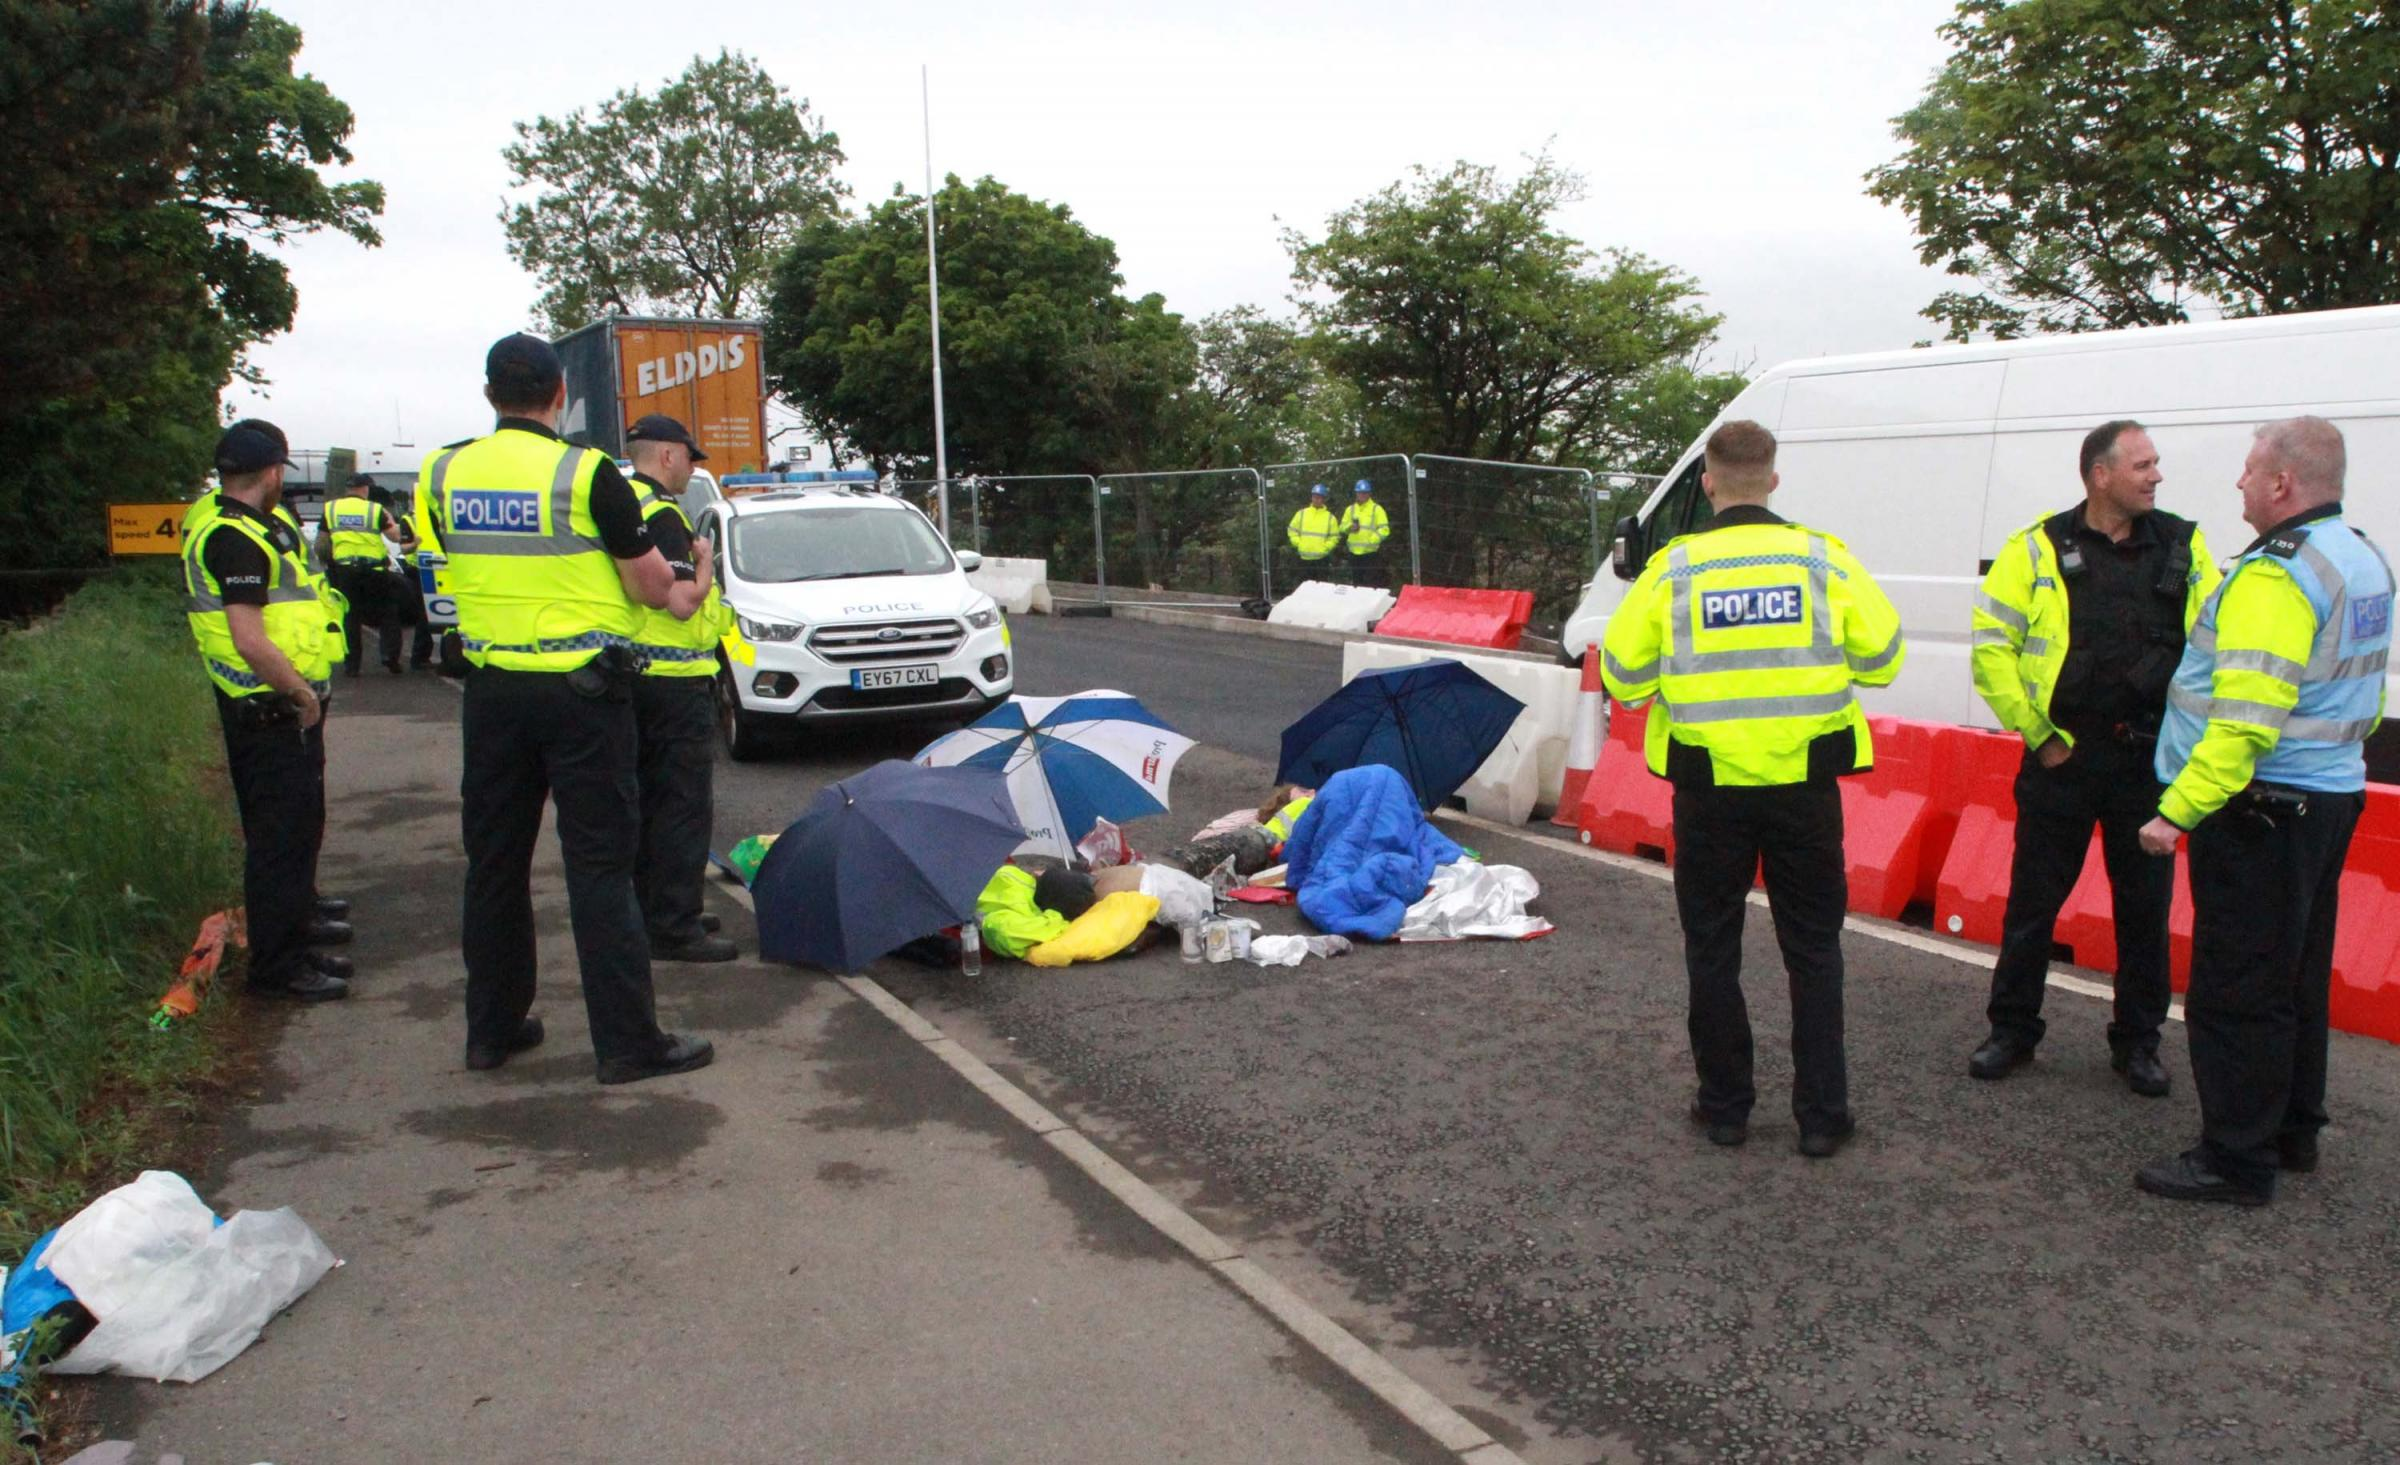 BLOCKADE: Activists with the Campaign to Protect Pont Valley 'locked-on' to to prevent resurfacing of road outside Bradley opencast mine site between Leadgate and Dipton Picture: Gavin Engelbrecht